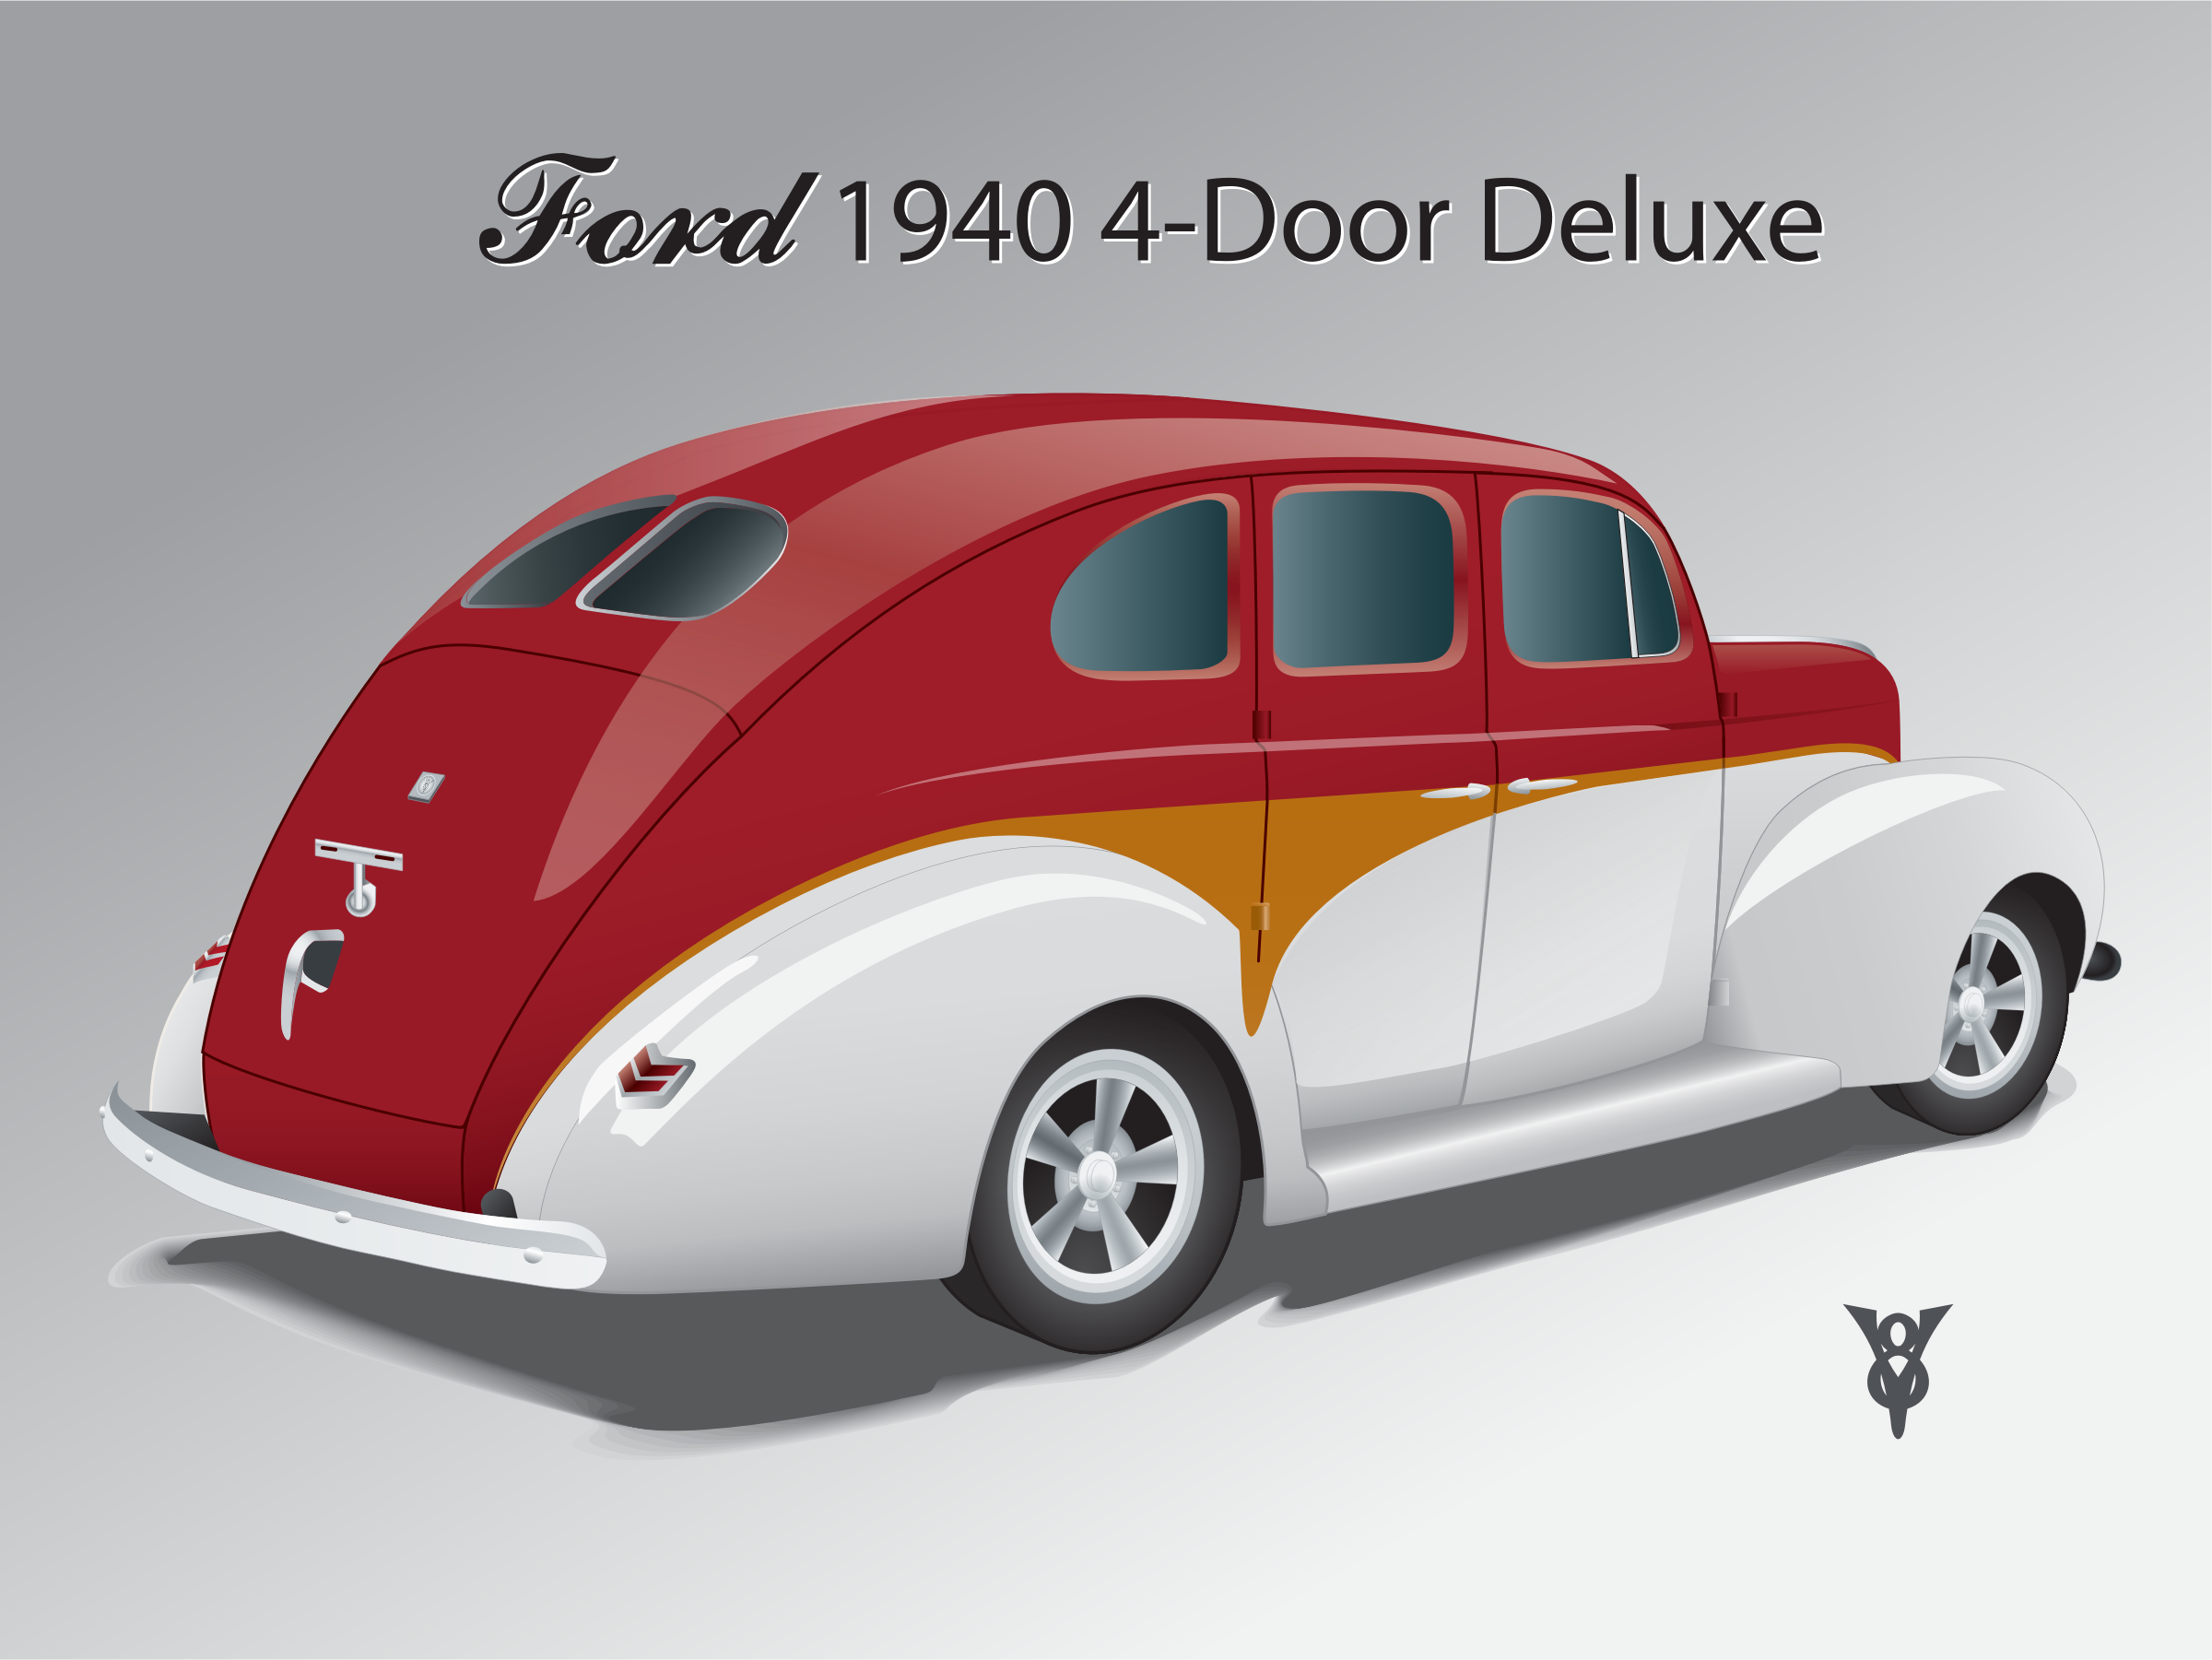 1940 Ford 4-door Sedan by bnsonger47